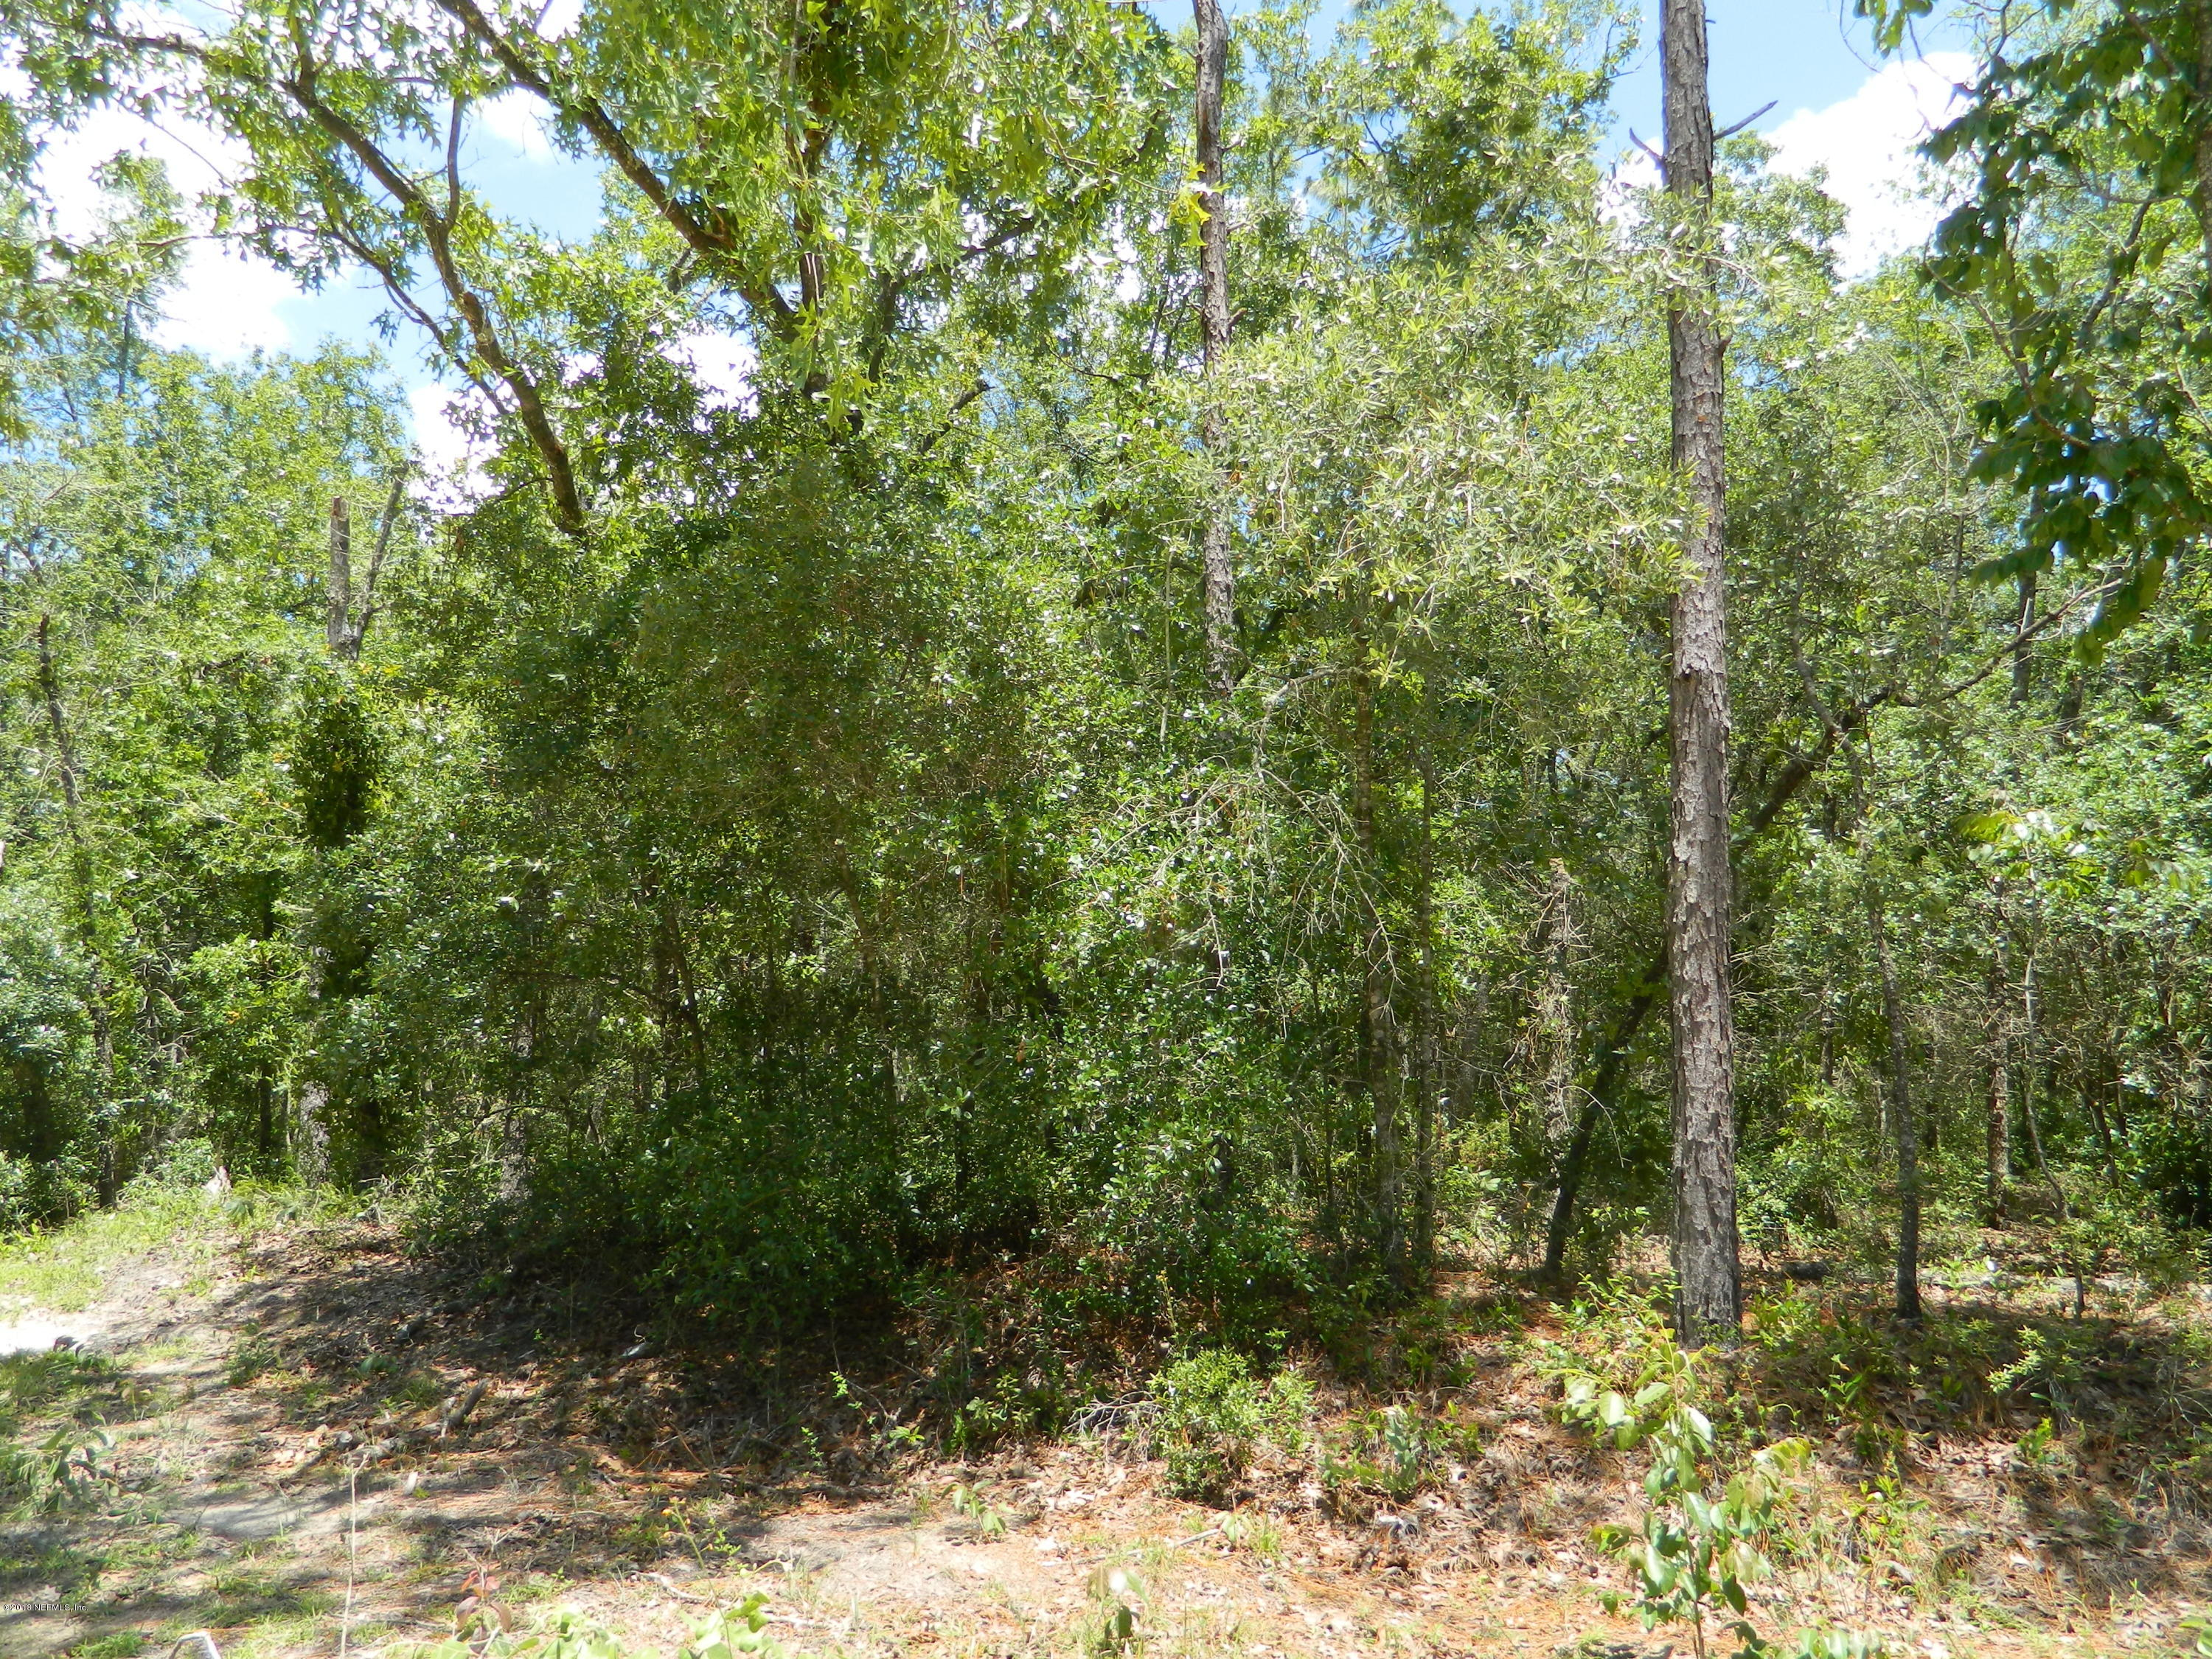 0 JANET, INTERLACHEN, FLORIDA 32148, ,Vacant land,For sale,JANET,938213